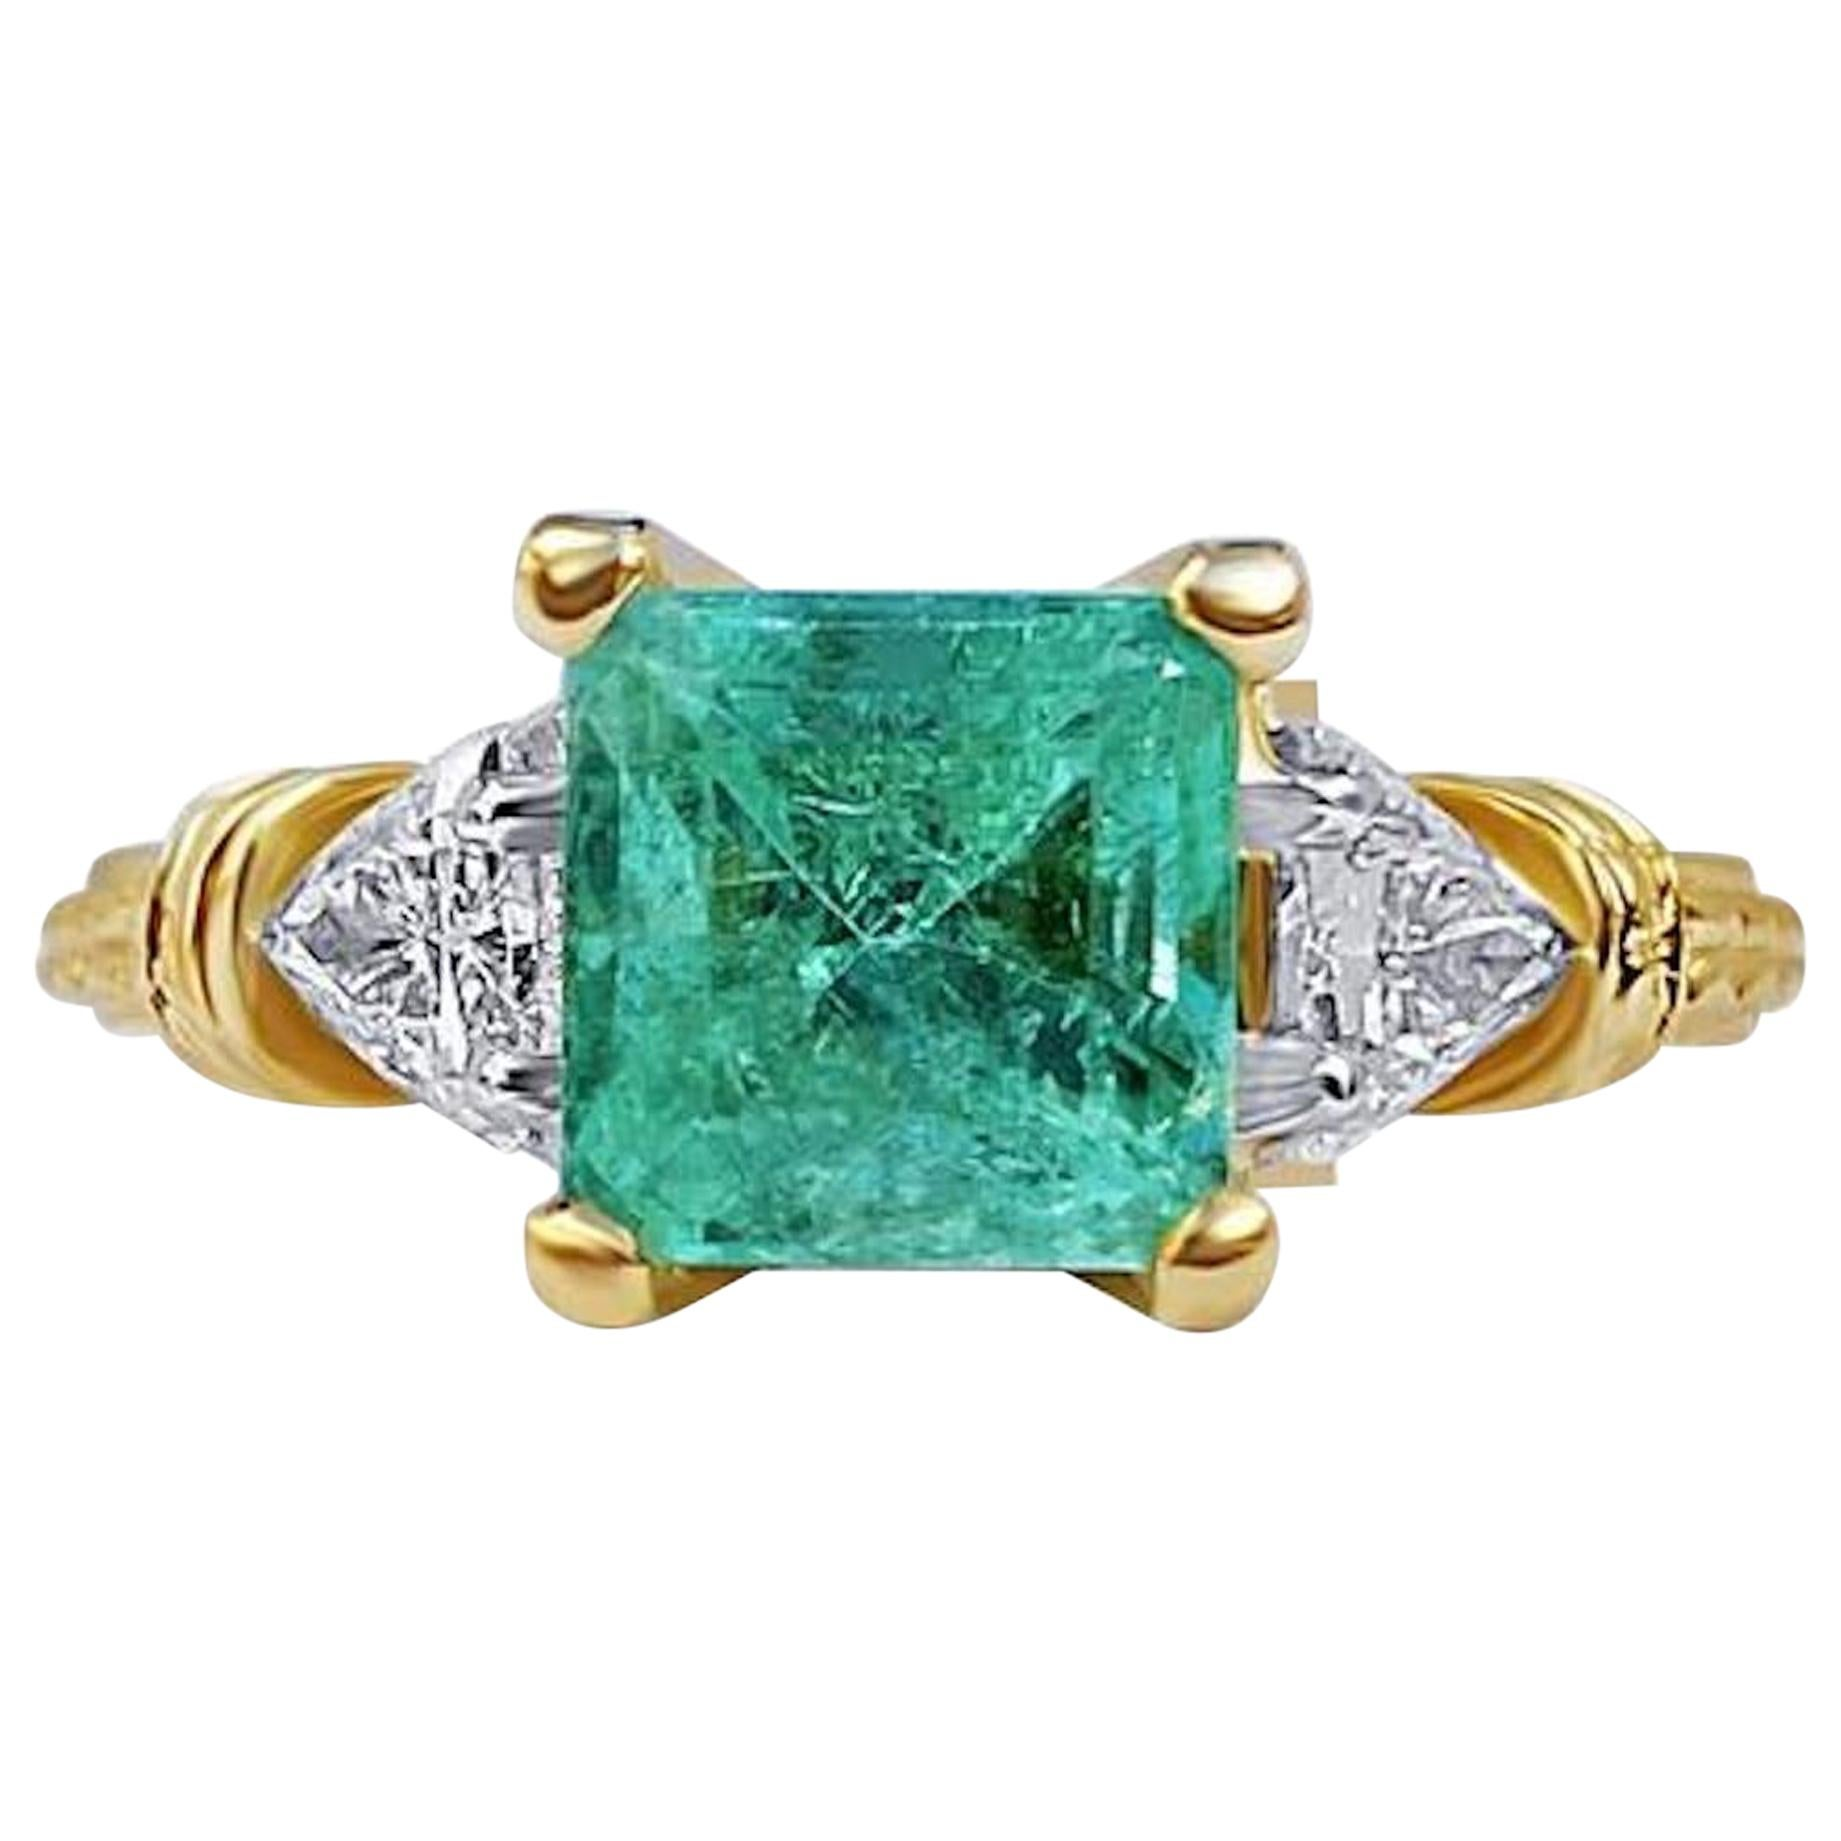 1.95 Carat Colombian Emerald and Diamond 18 Karat Gold Engagement Ring